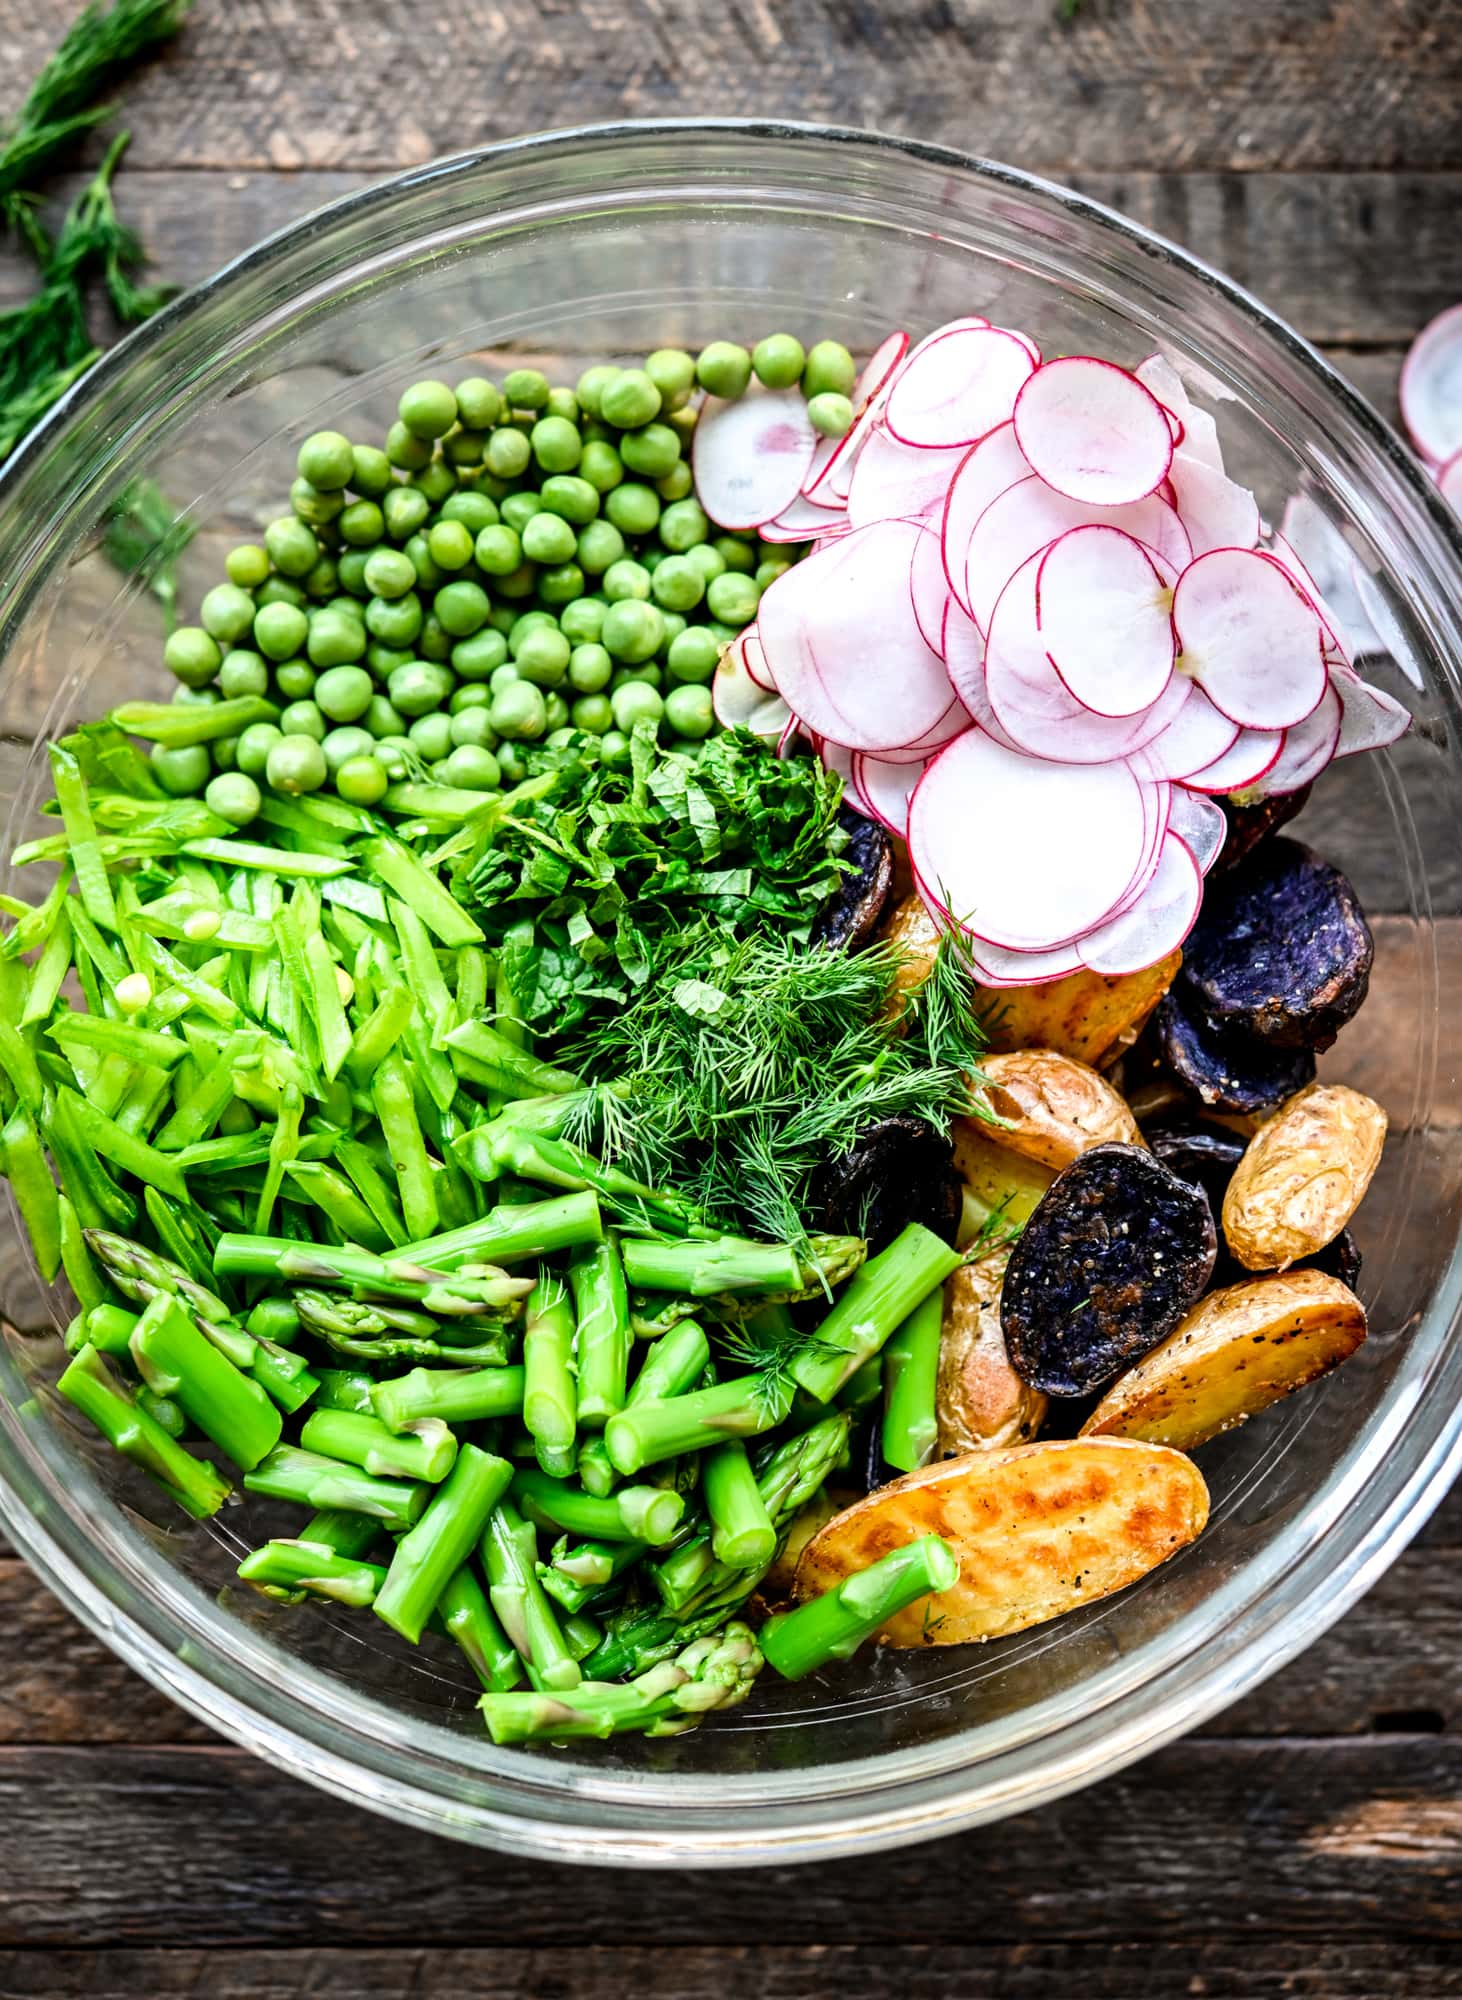 Overhead view of ingredients for spring potato salad in a glass bowl